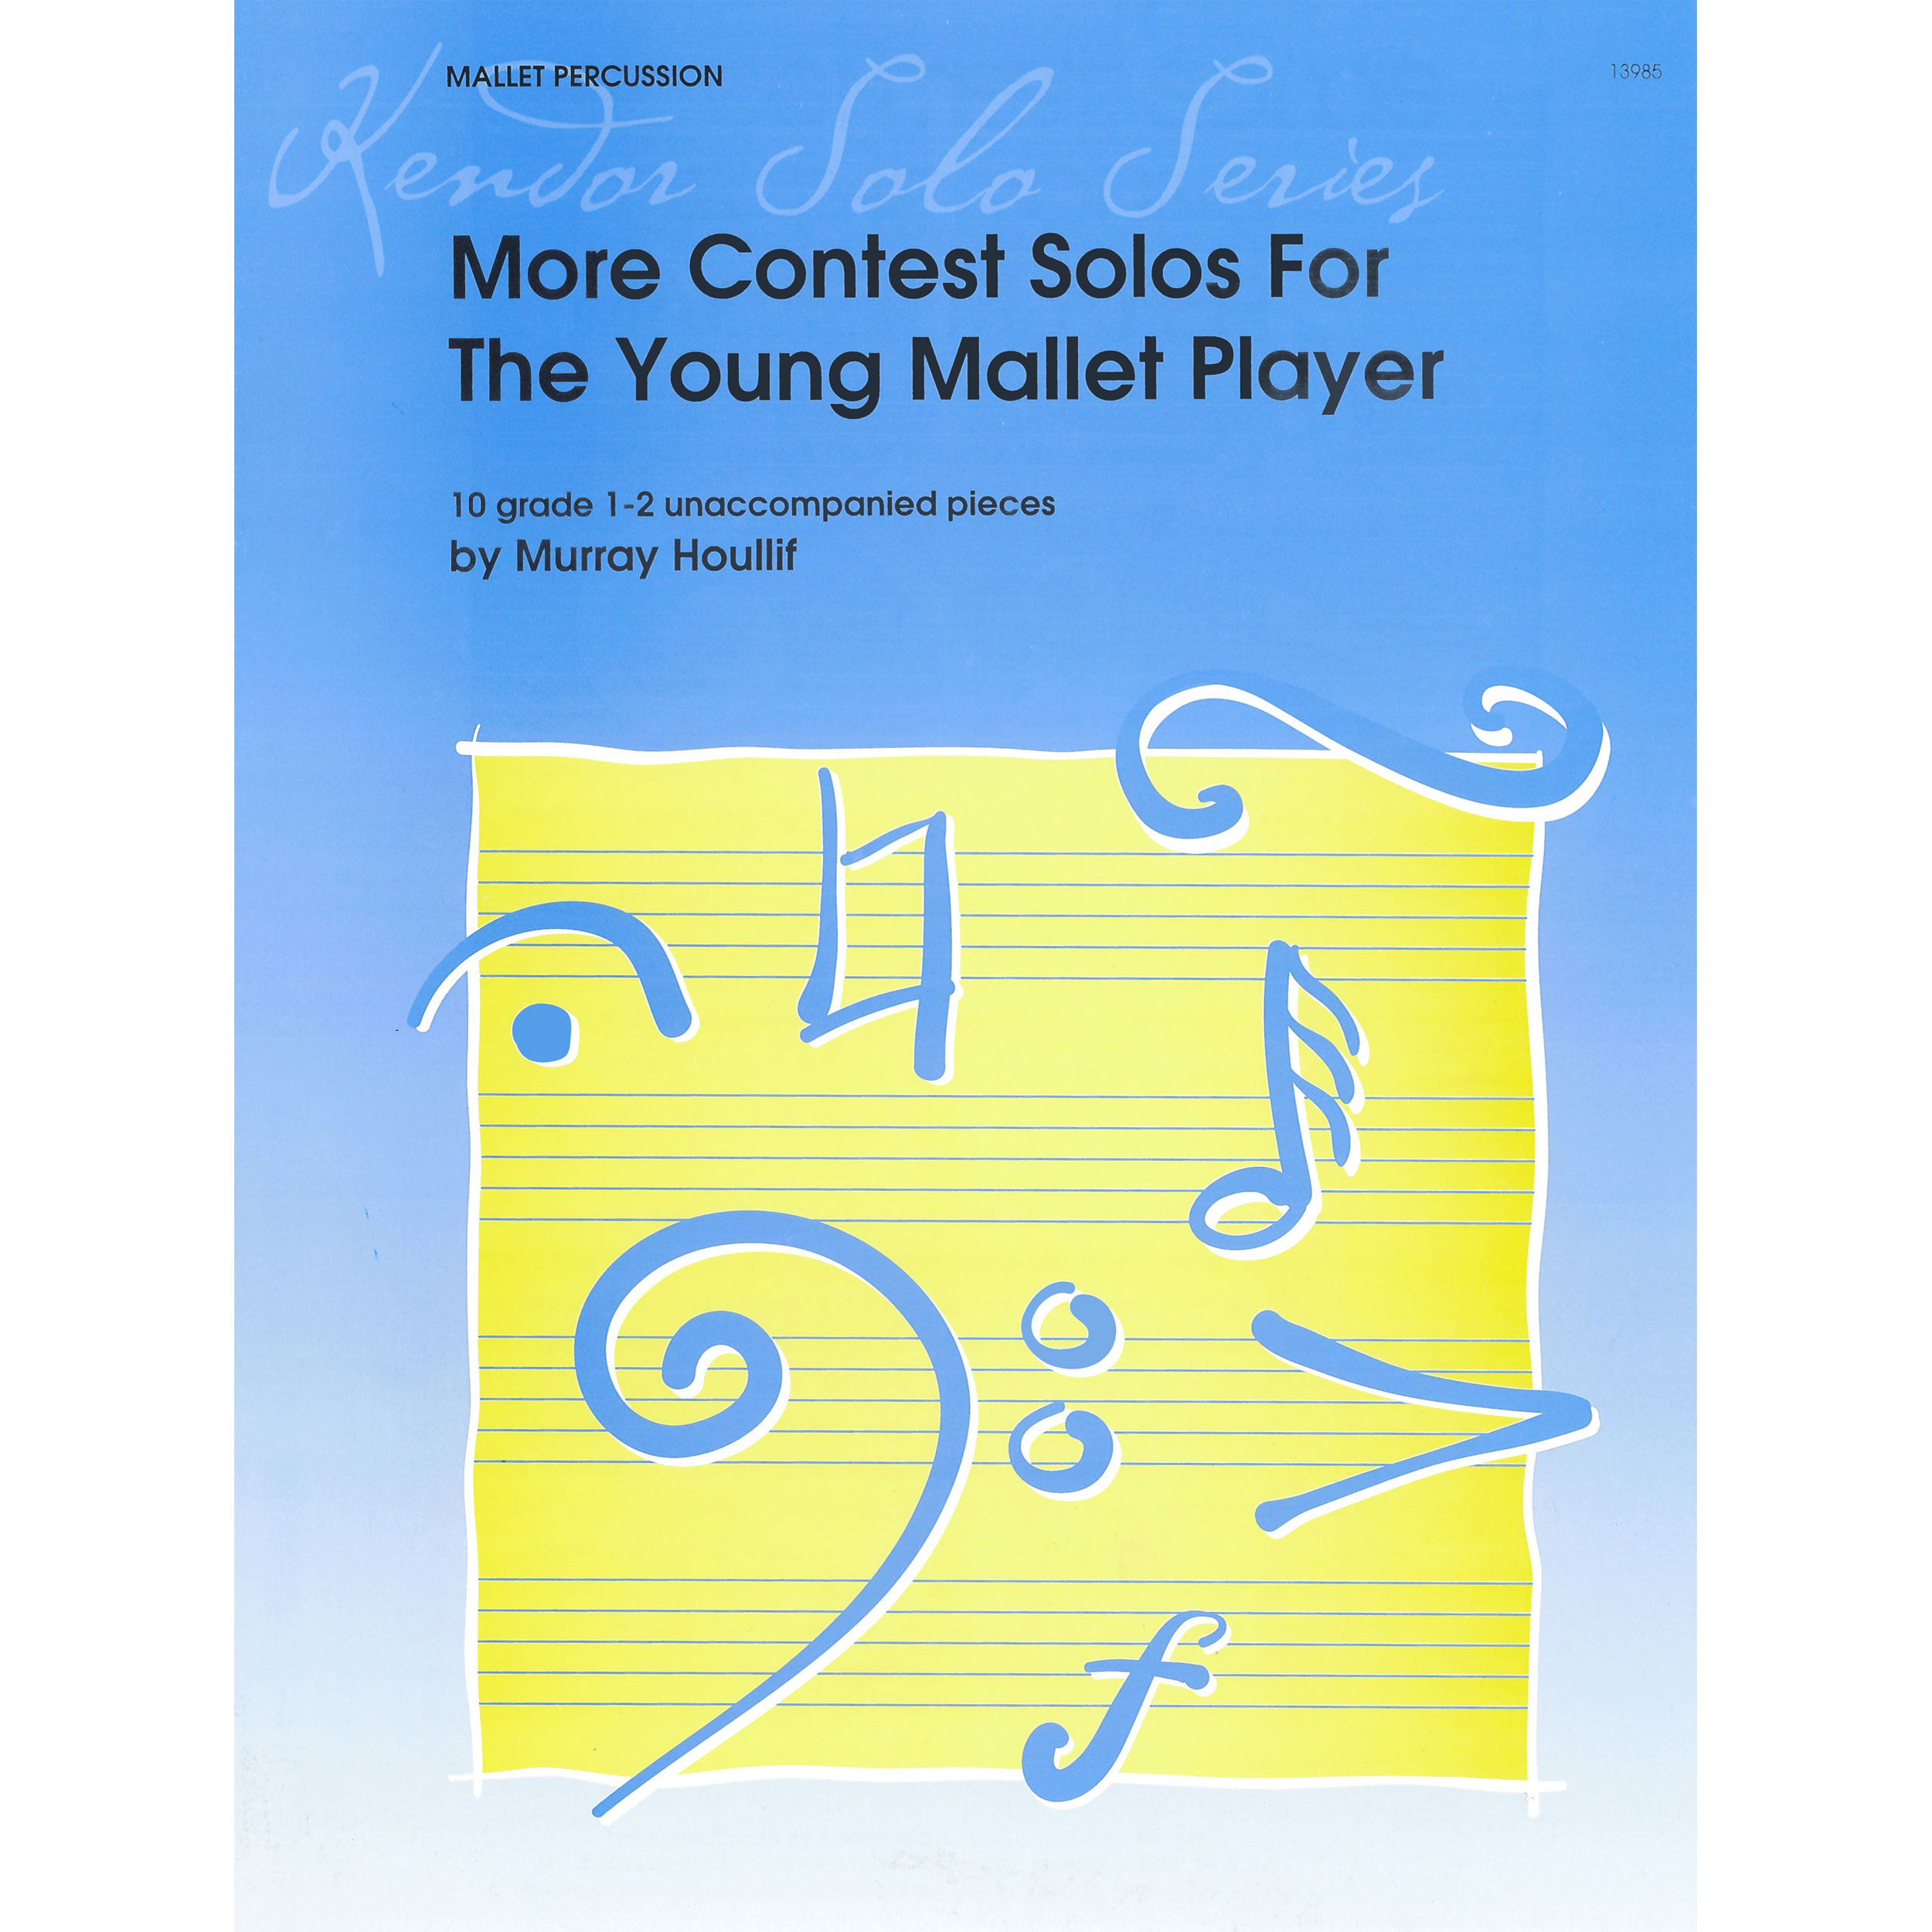 More Contest Solos for the Young Mallet Player by Murray Houliff